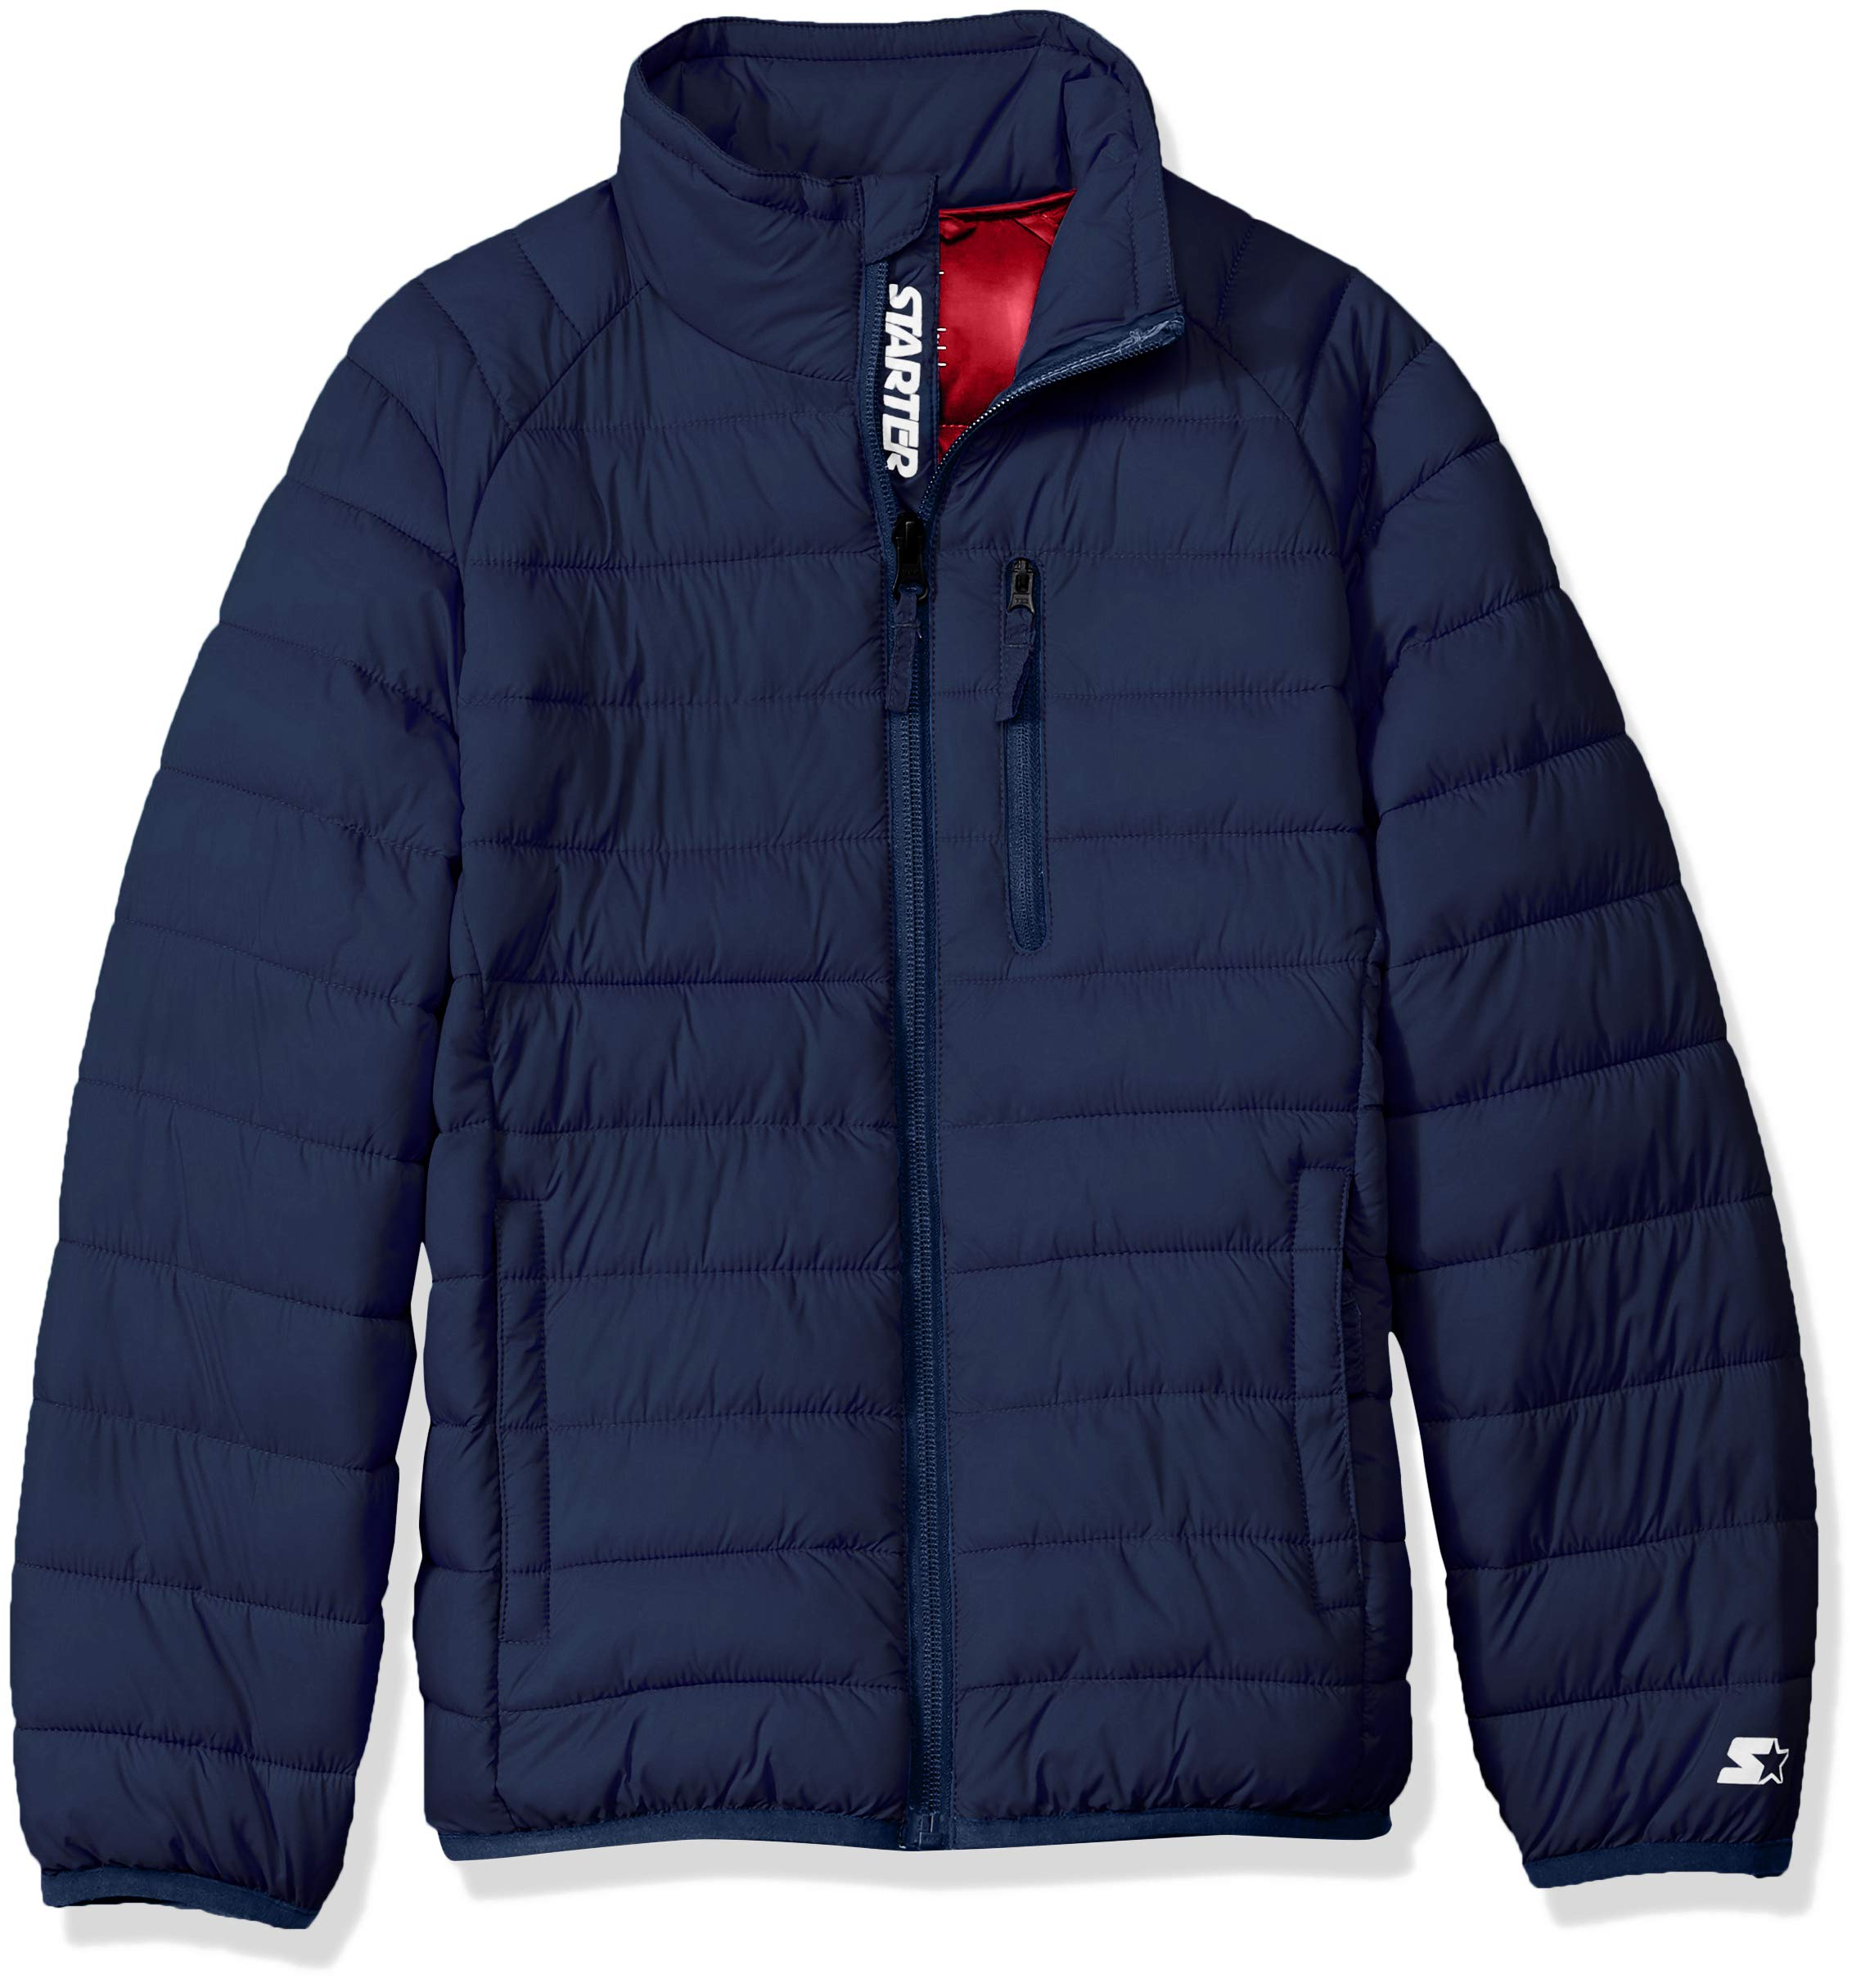 Starter Boys' Packable Puffer Jacket, Amazon Exclusive, Team Navy, XS